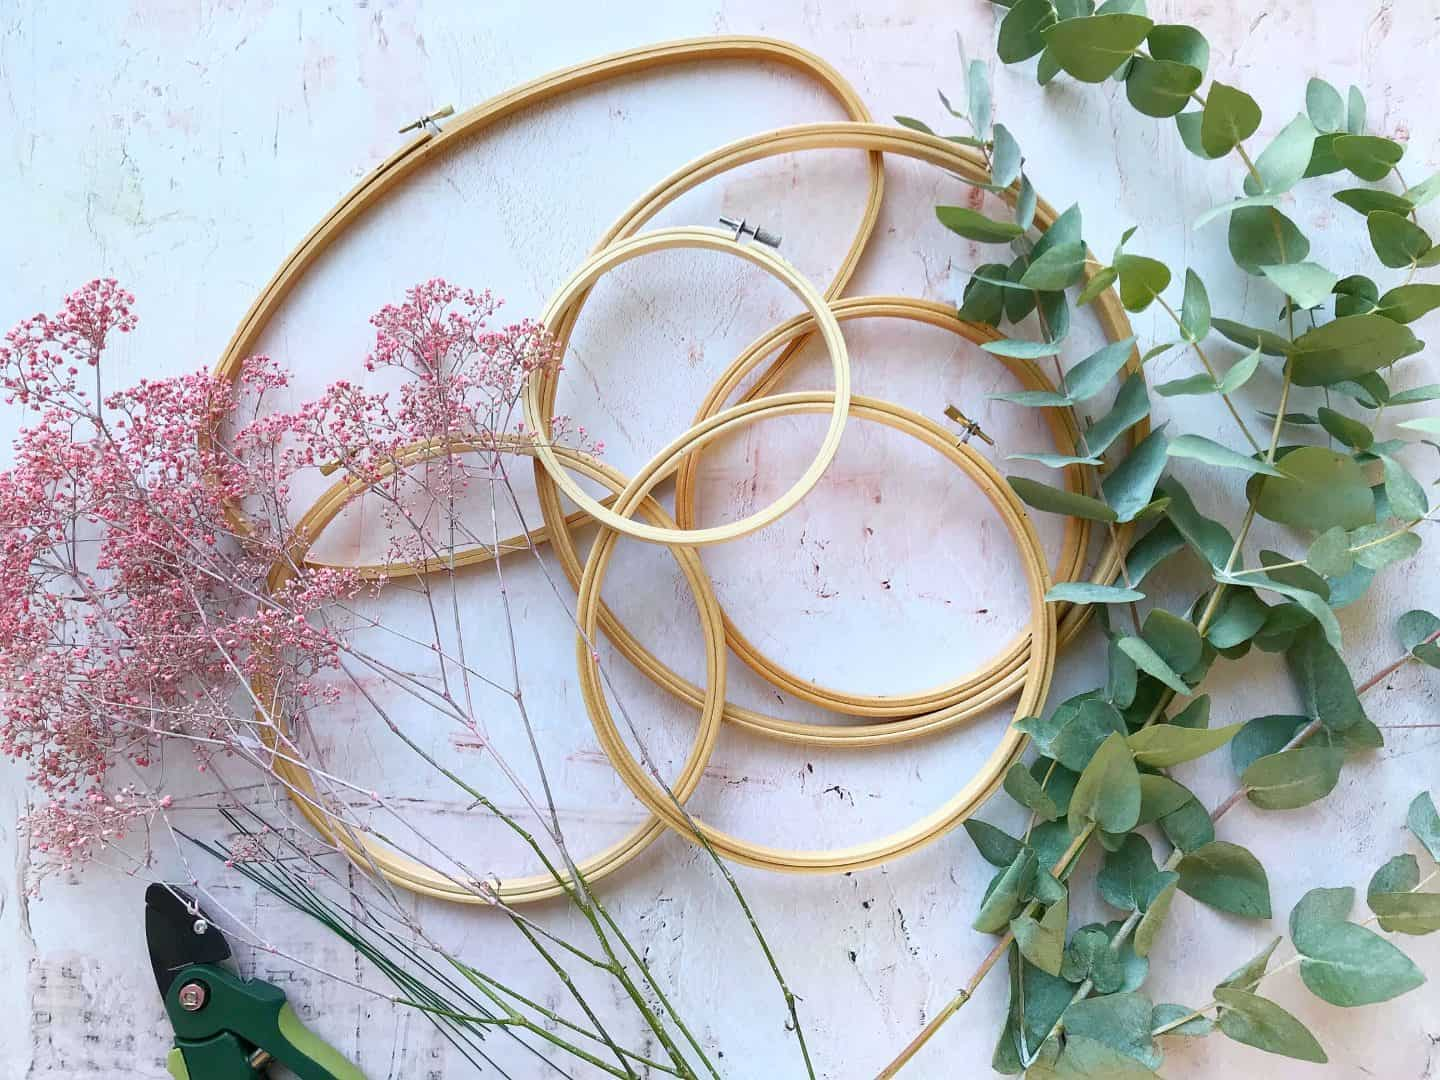 Materials to make winter wreaths with emboridery hoops and foliage